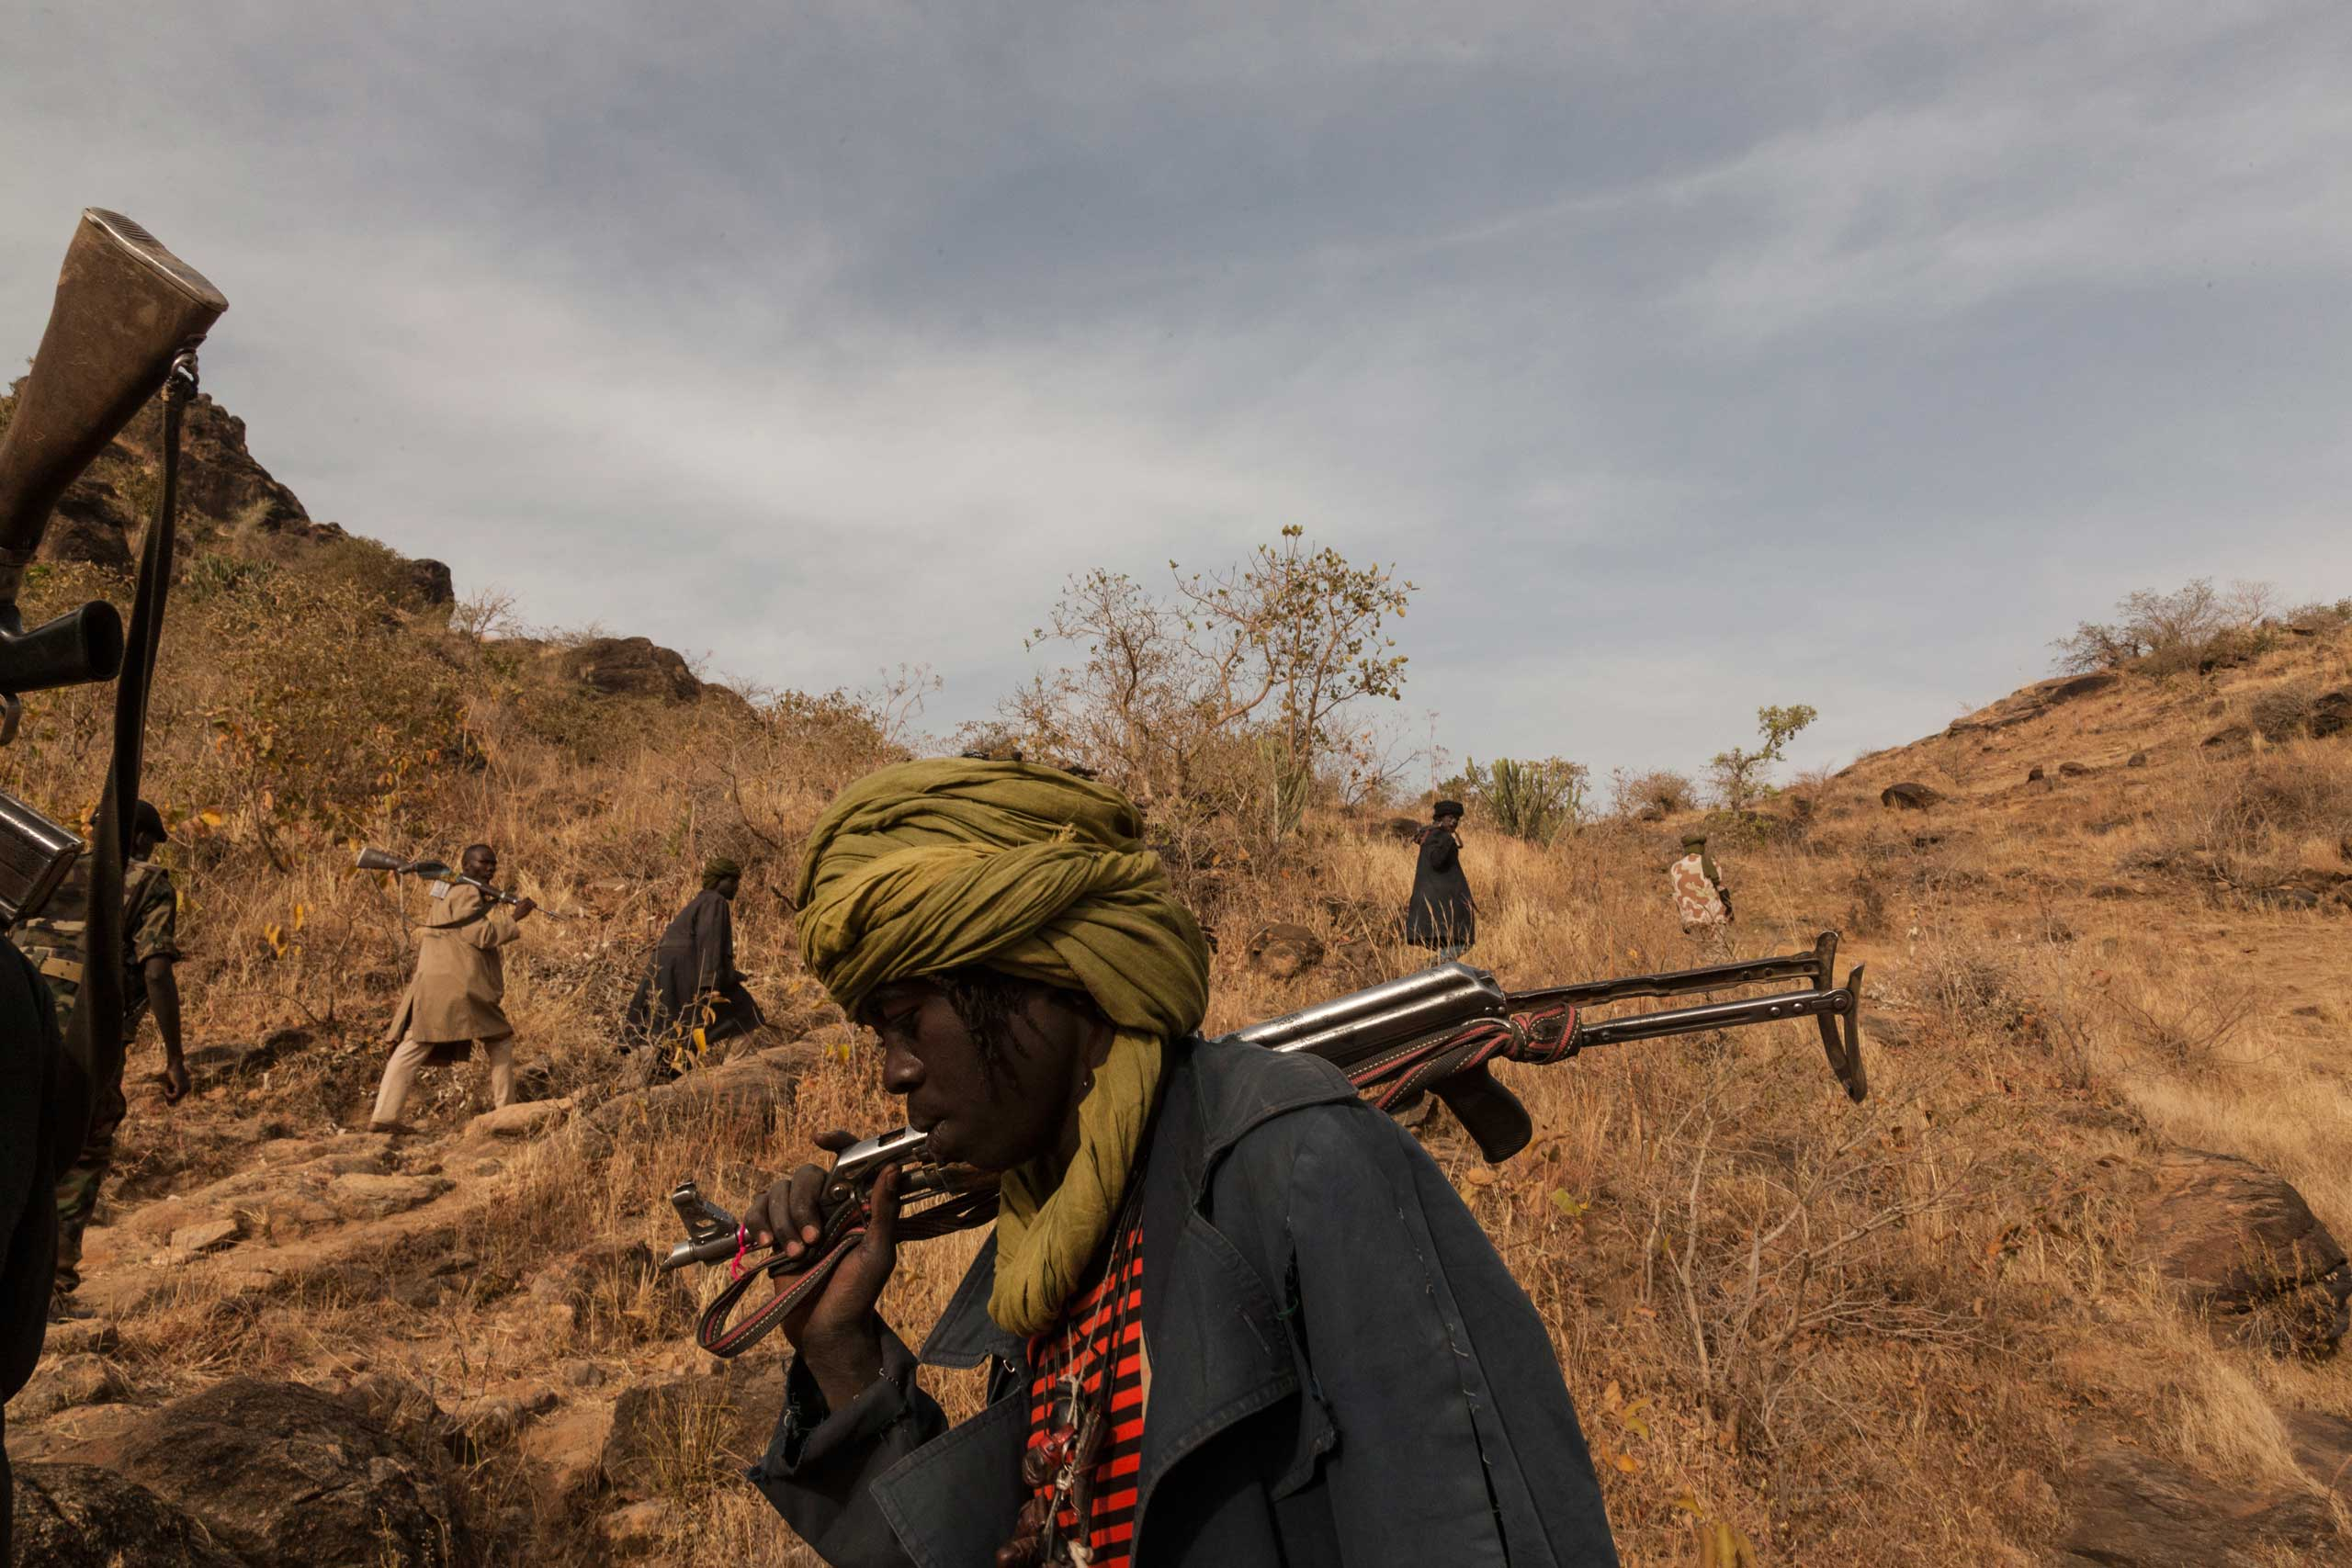 Members of the rebel group, the Sudan Liberation Army led by Abdul Wahid (SLA-AW), climb towards the front lines in Jebel Marra, Central Darfur, Sudan.  The mountainous area has been a stronghold of the SLA-AW since the conflict between the neglected population and the Sudanese government broke out in 2003. March 4, 2015.